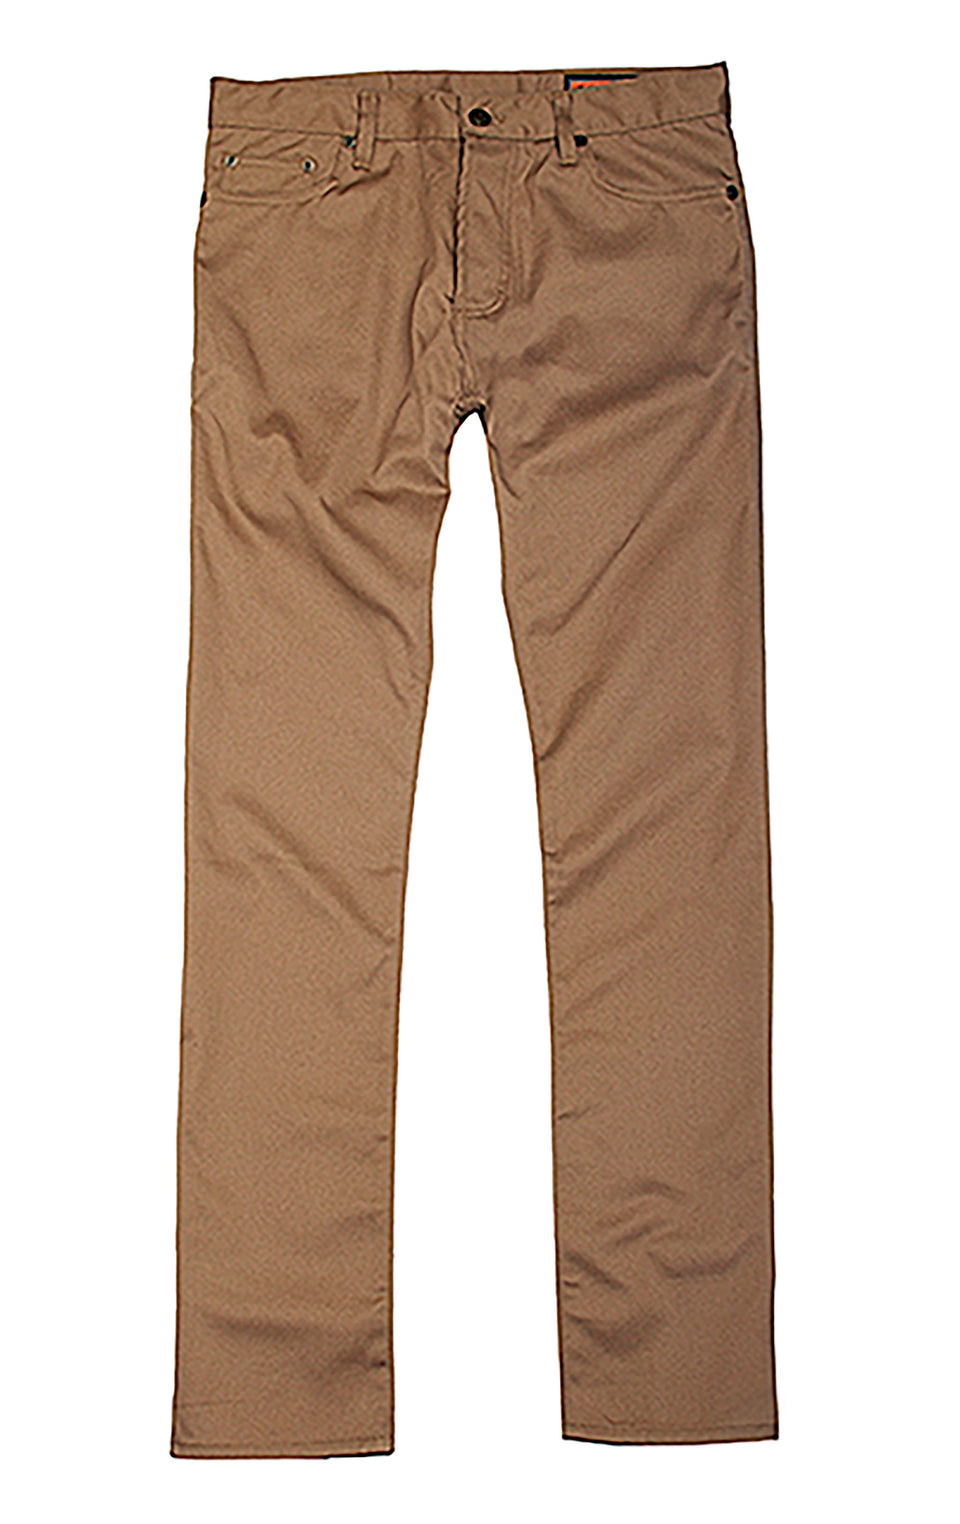 6 Point Pant, FG - Suntan Cramerton - Ball and Buck